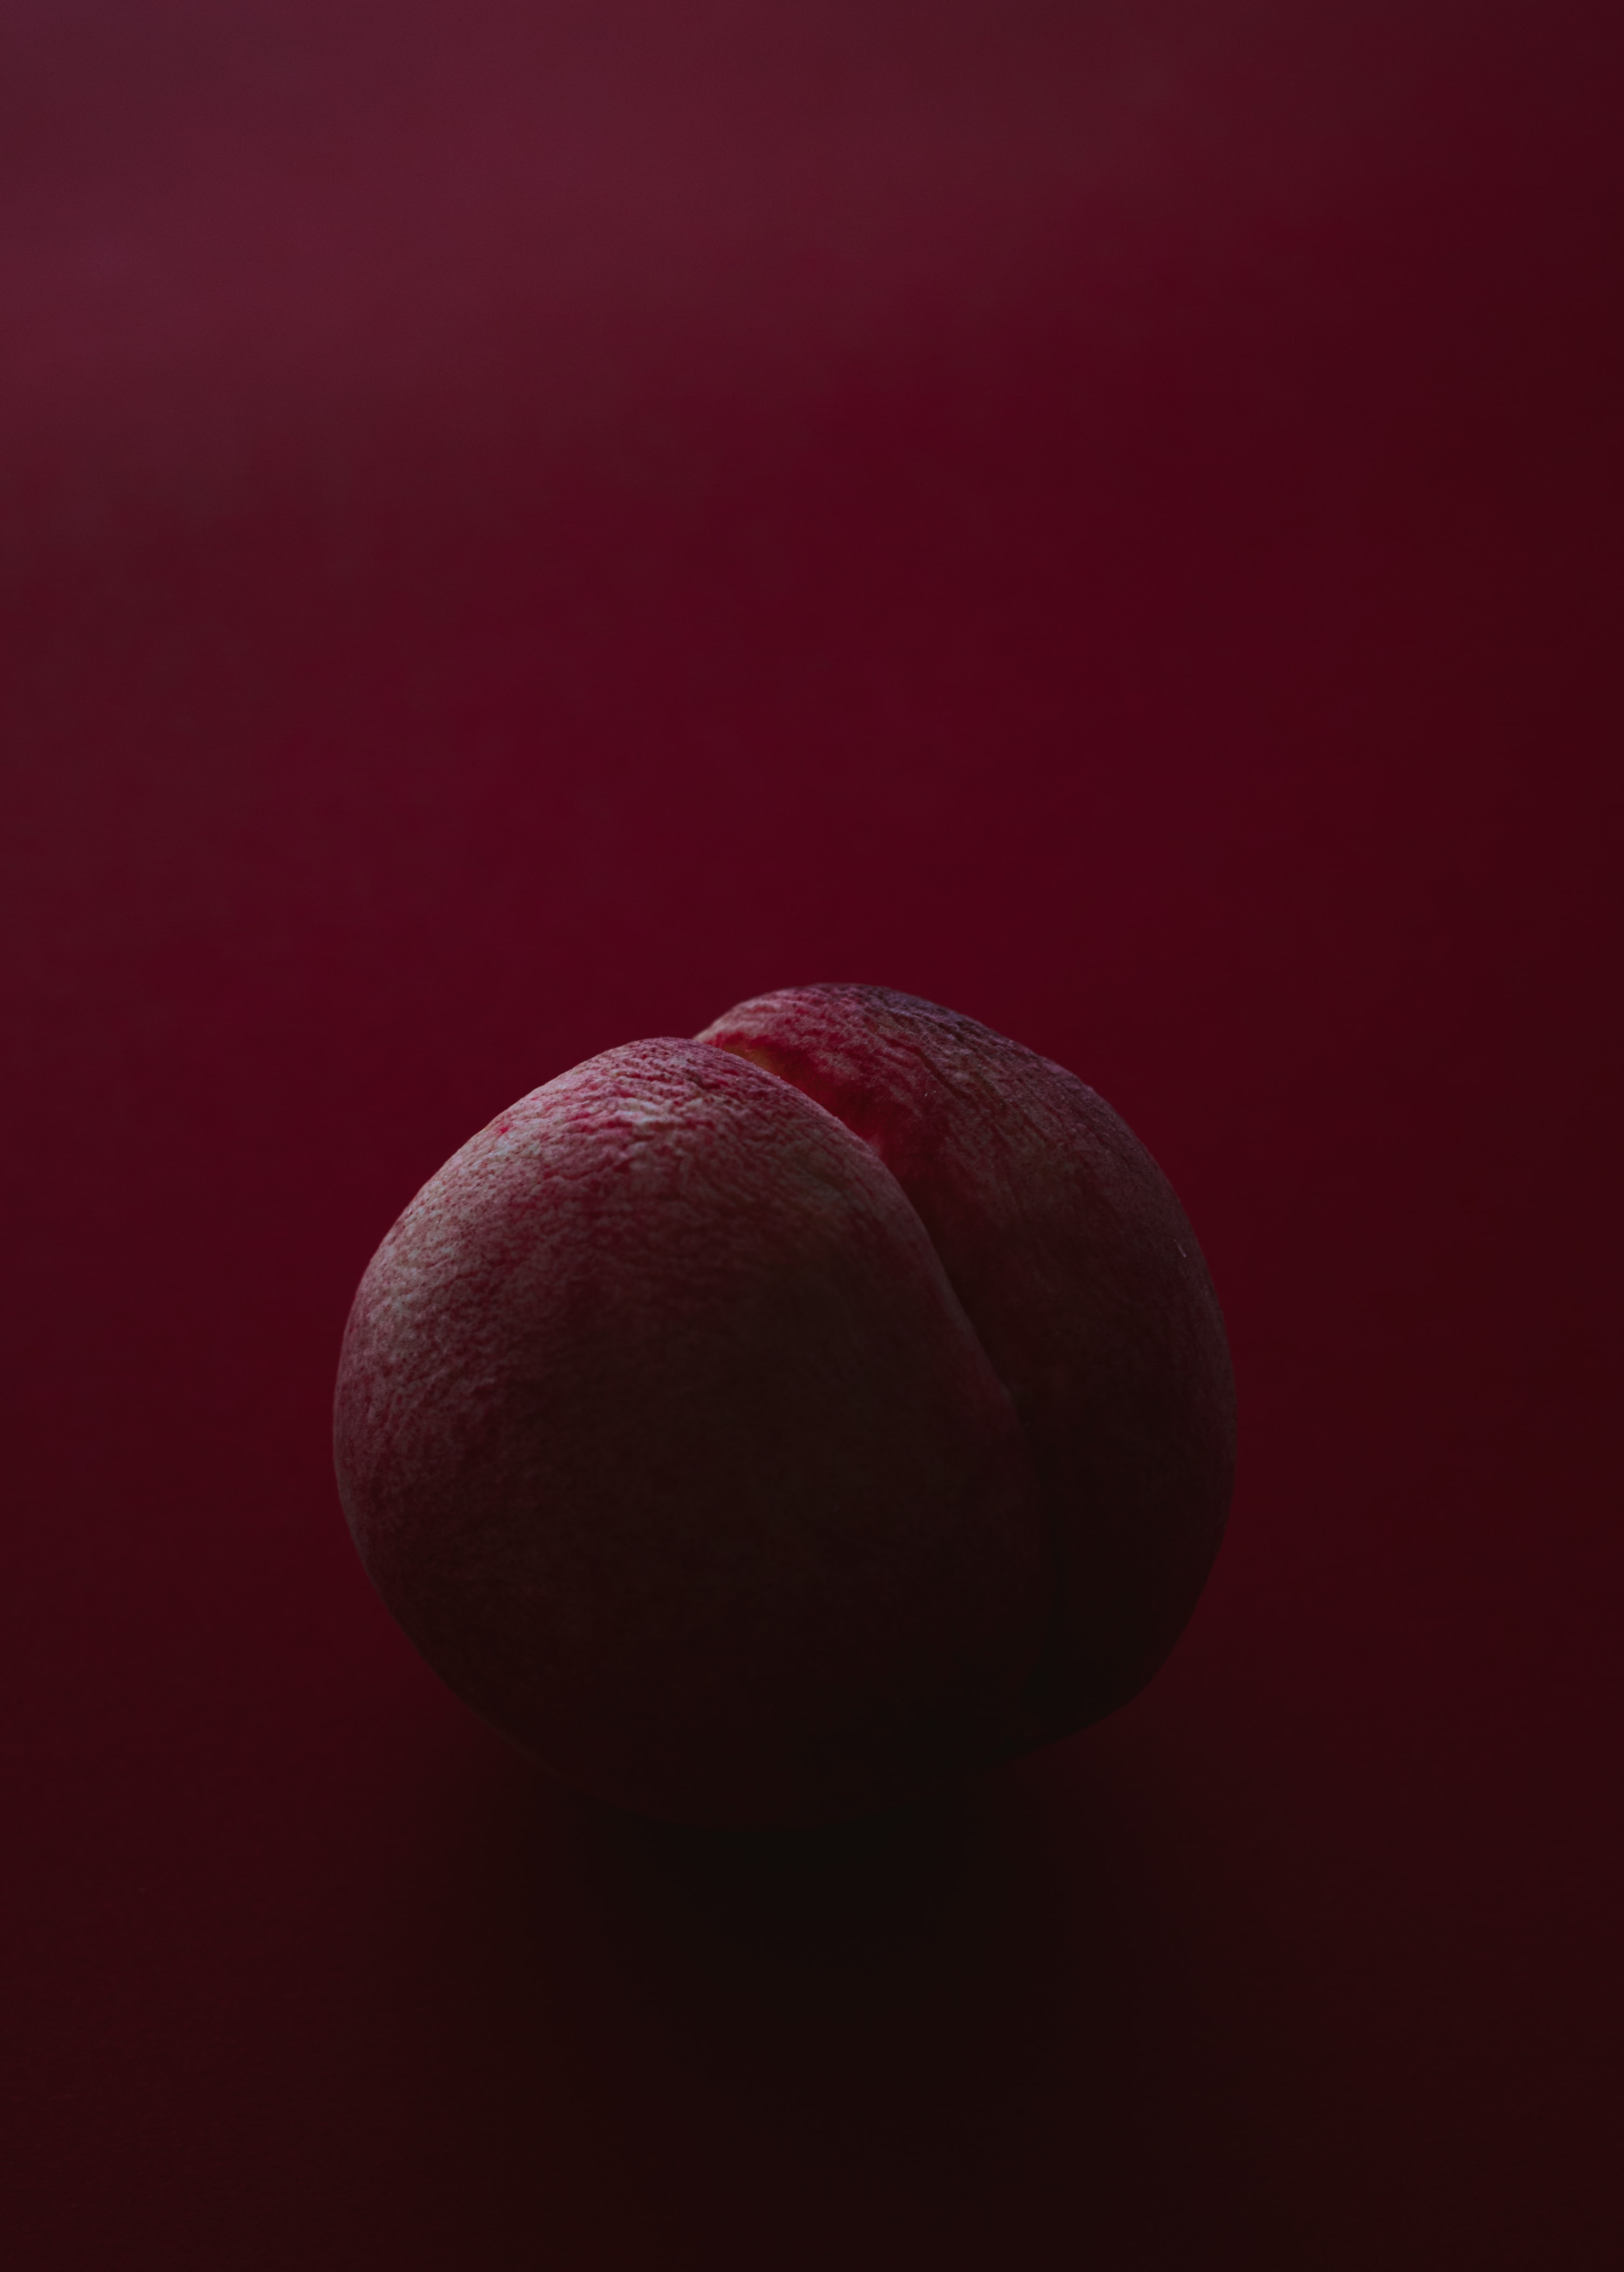 brown ball on red surface